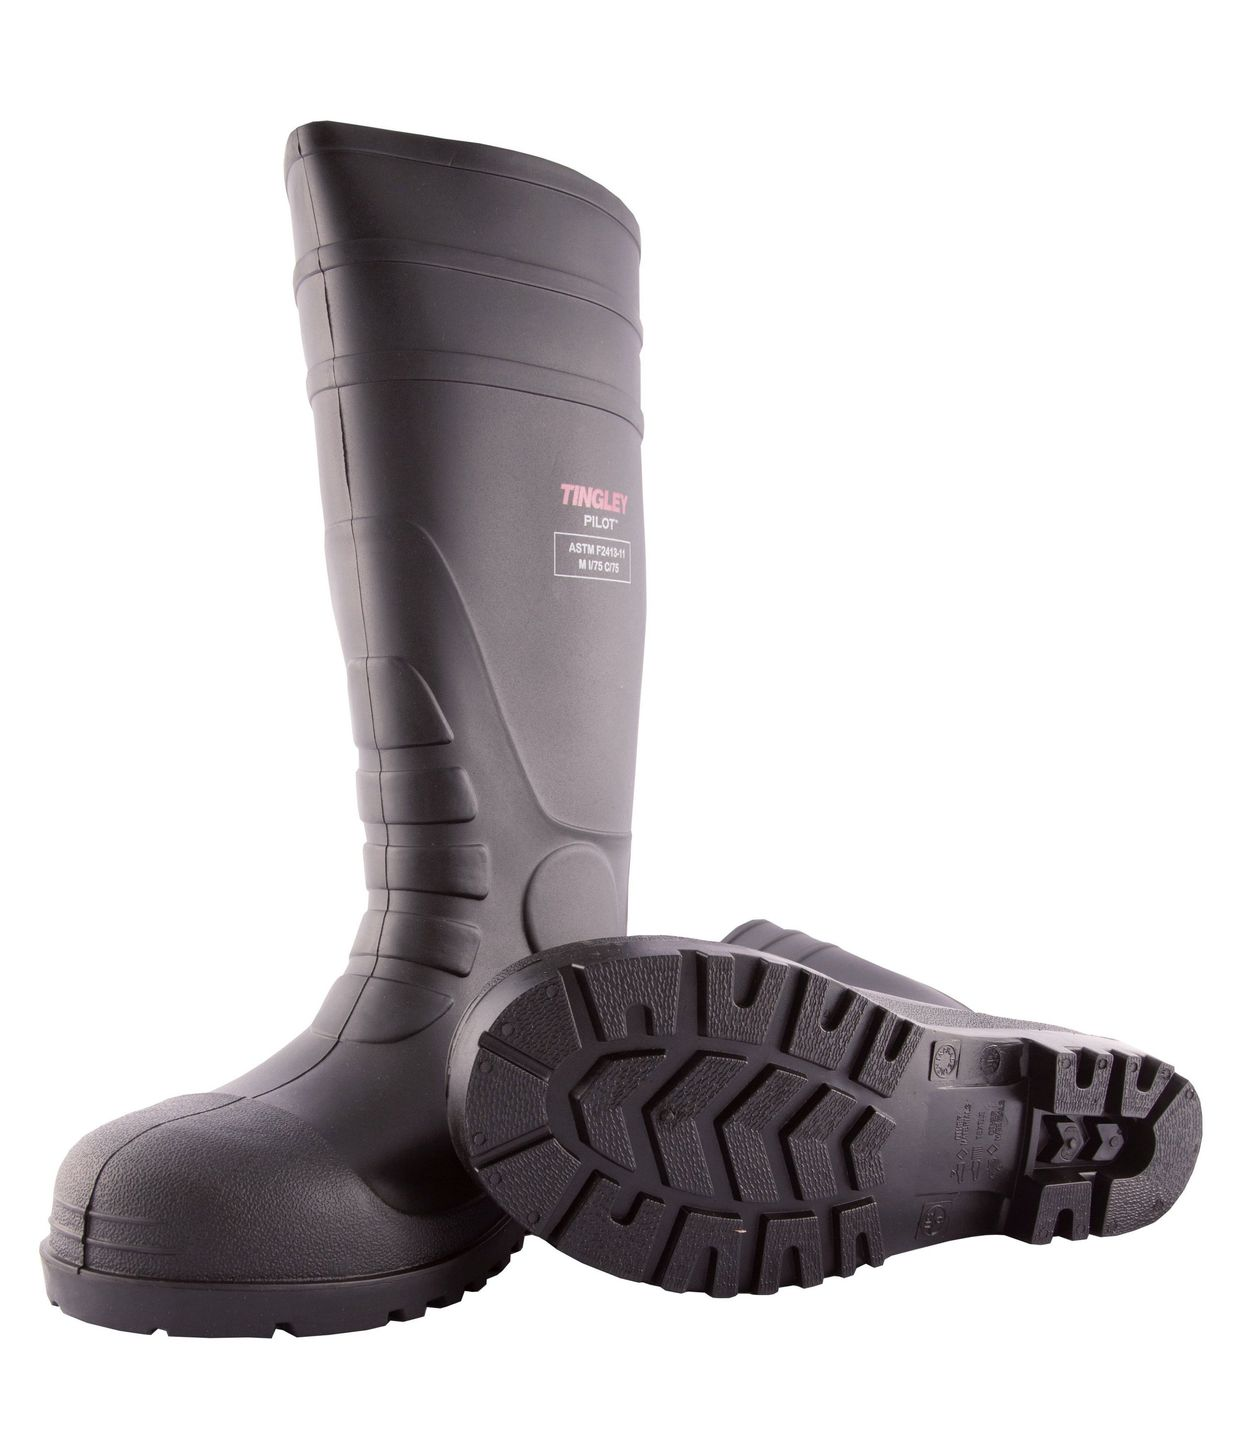 tingley-economical-steel-toe-pvc-rubber-work-boots-31251-15-tall-example.jpg